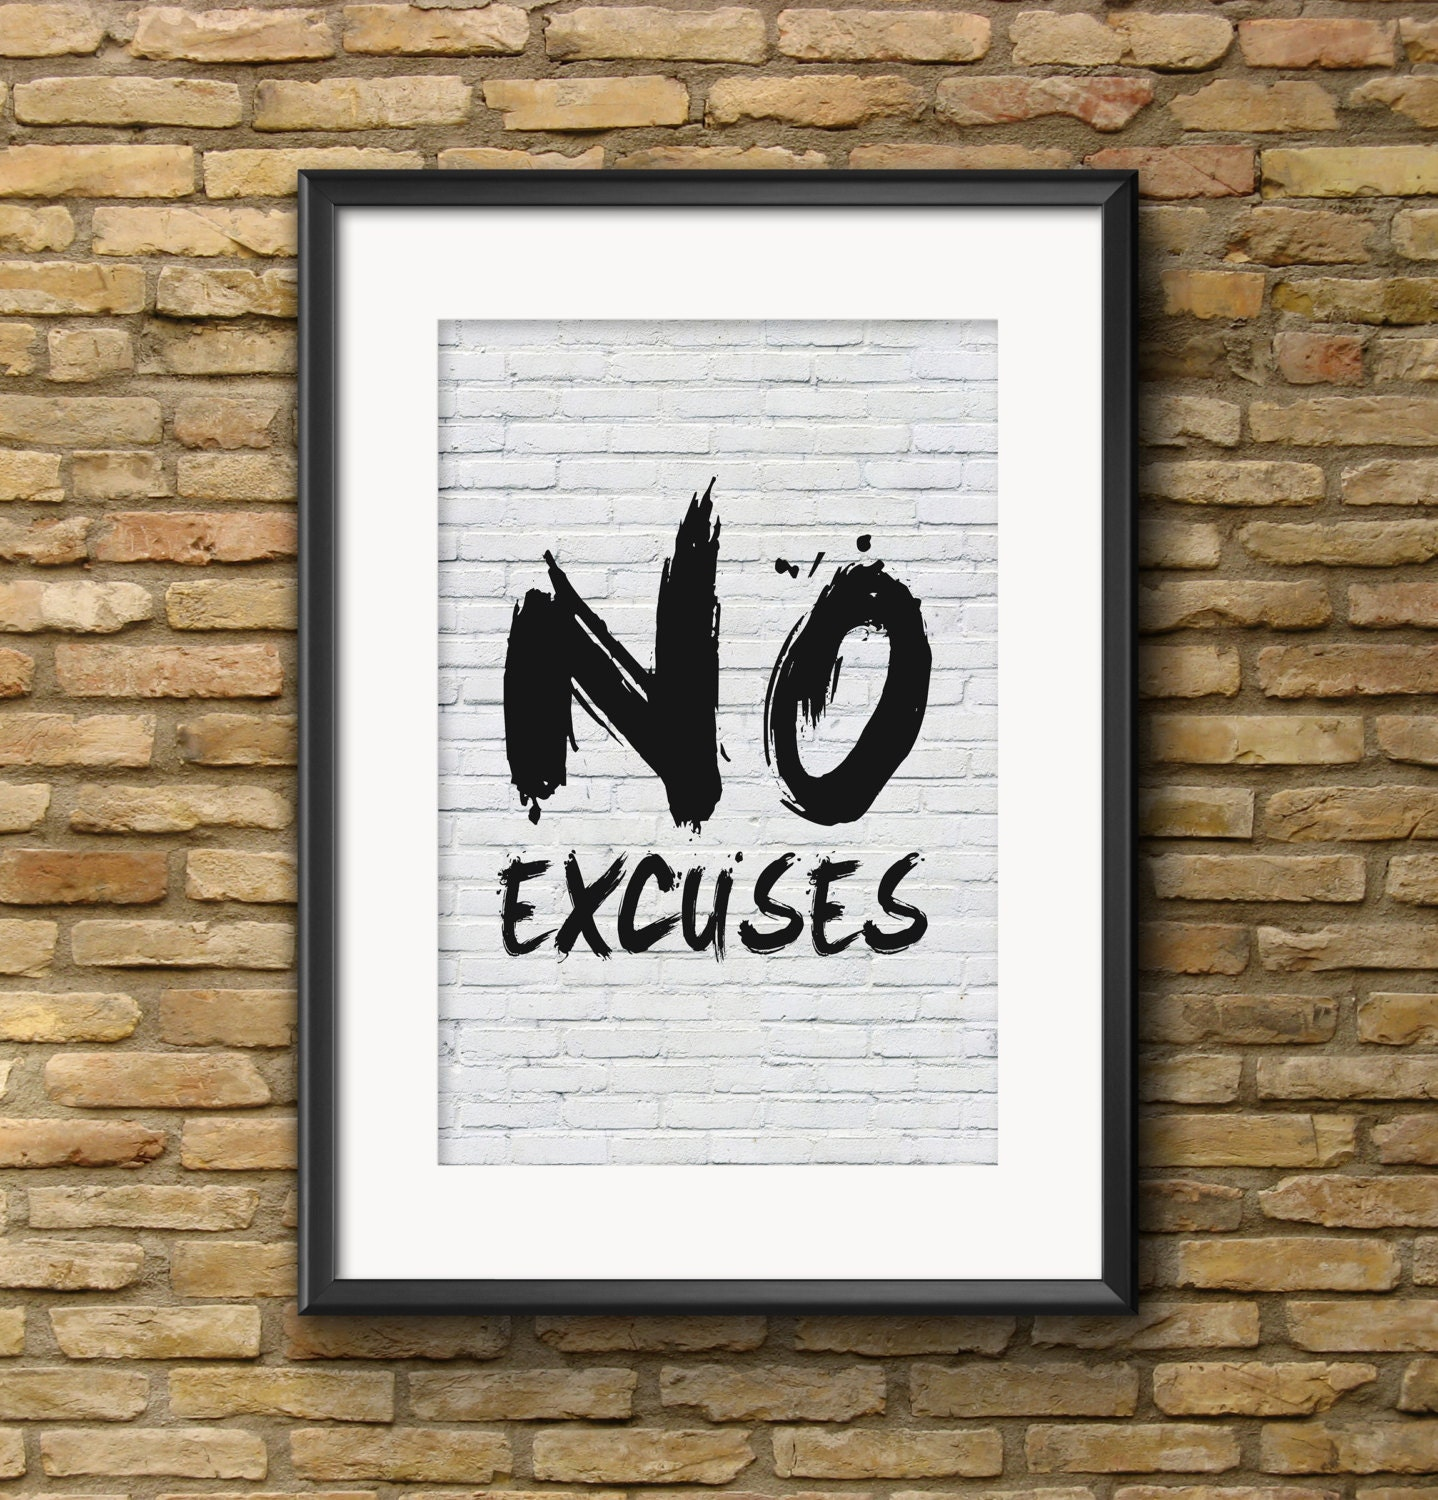 Charming No Excuses Printable Wall Art: U201cNO EXCUSESu201d Motivational Wall Art, Inspirational  Art, Printable Decor, Office Decor, Bedroom Decor